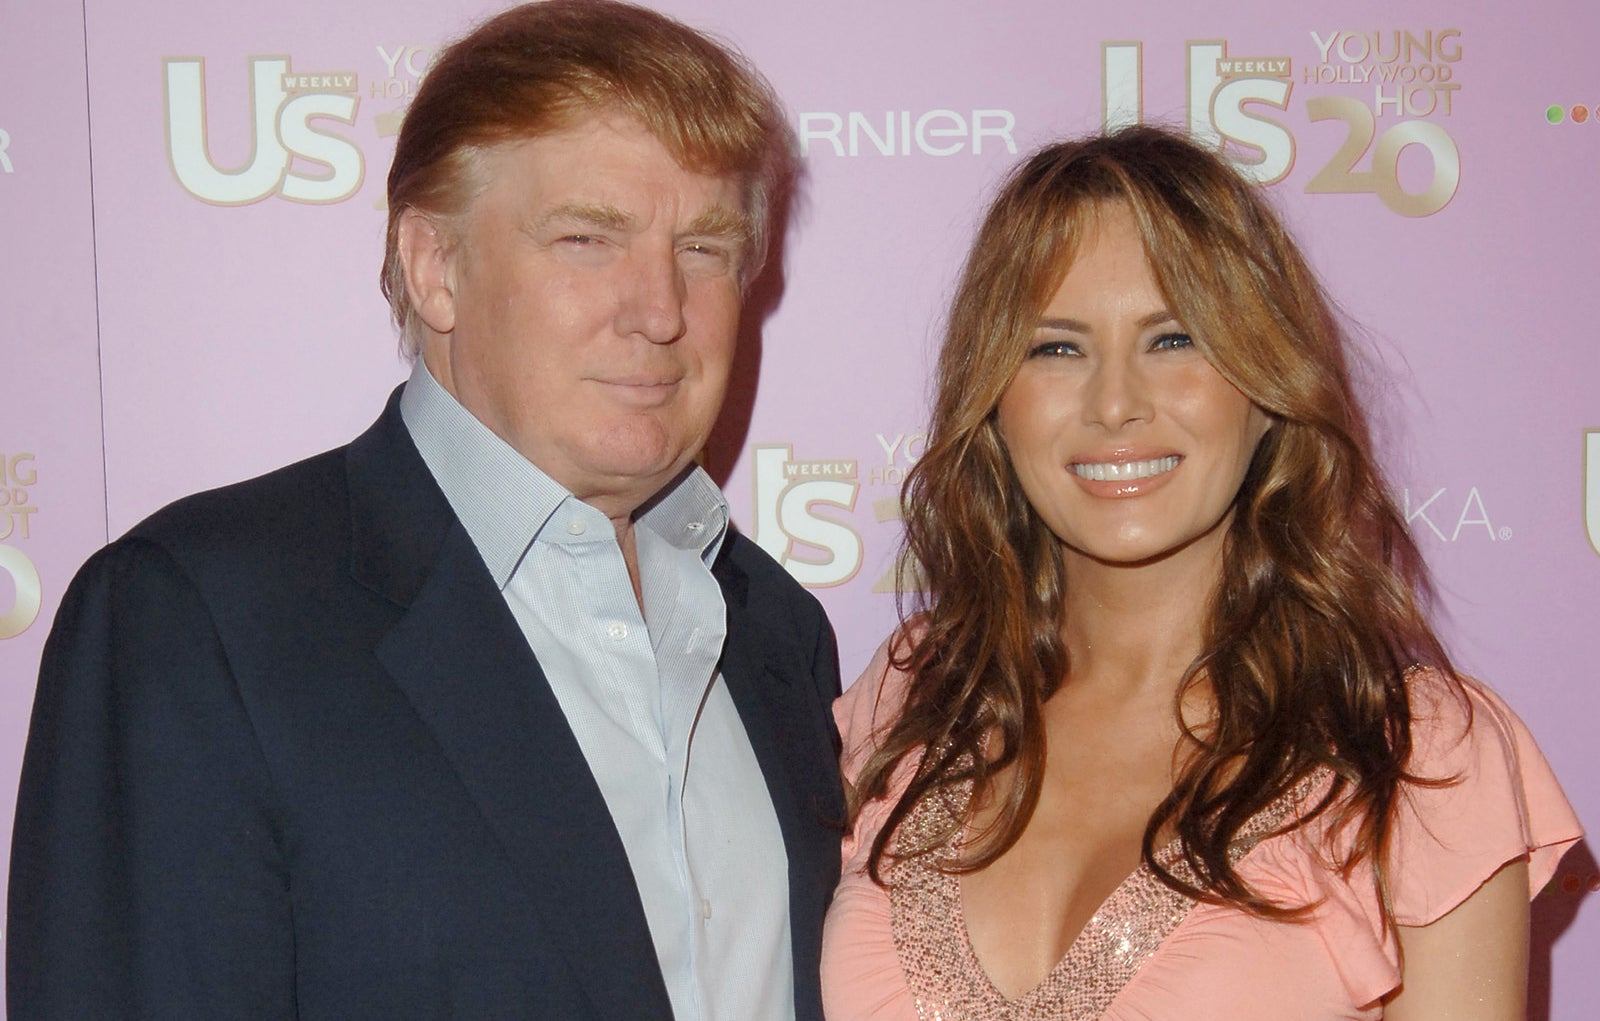 Donald and Melania Trump came to one of our parties in LA in 2006.